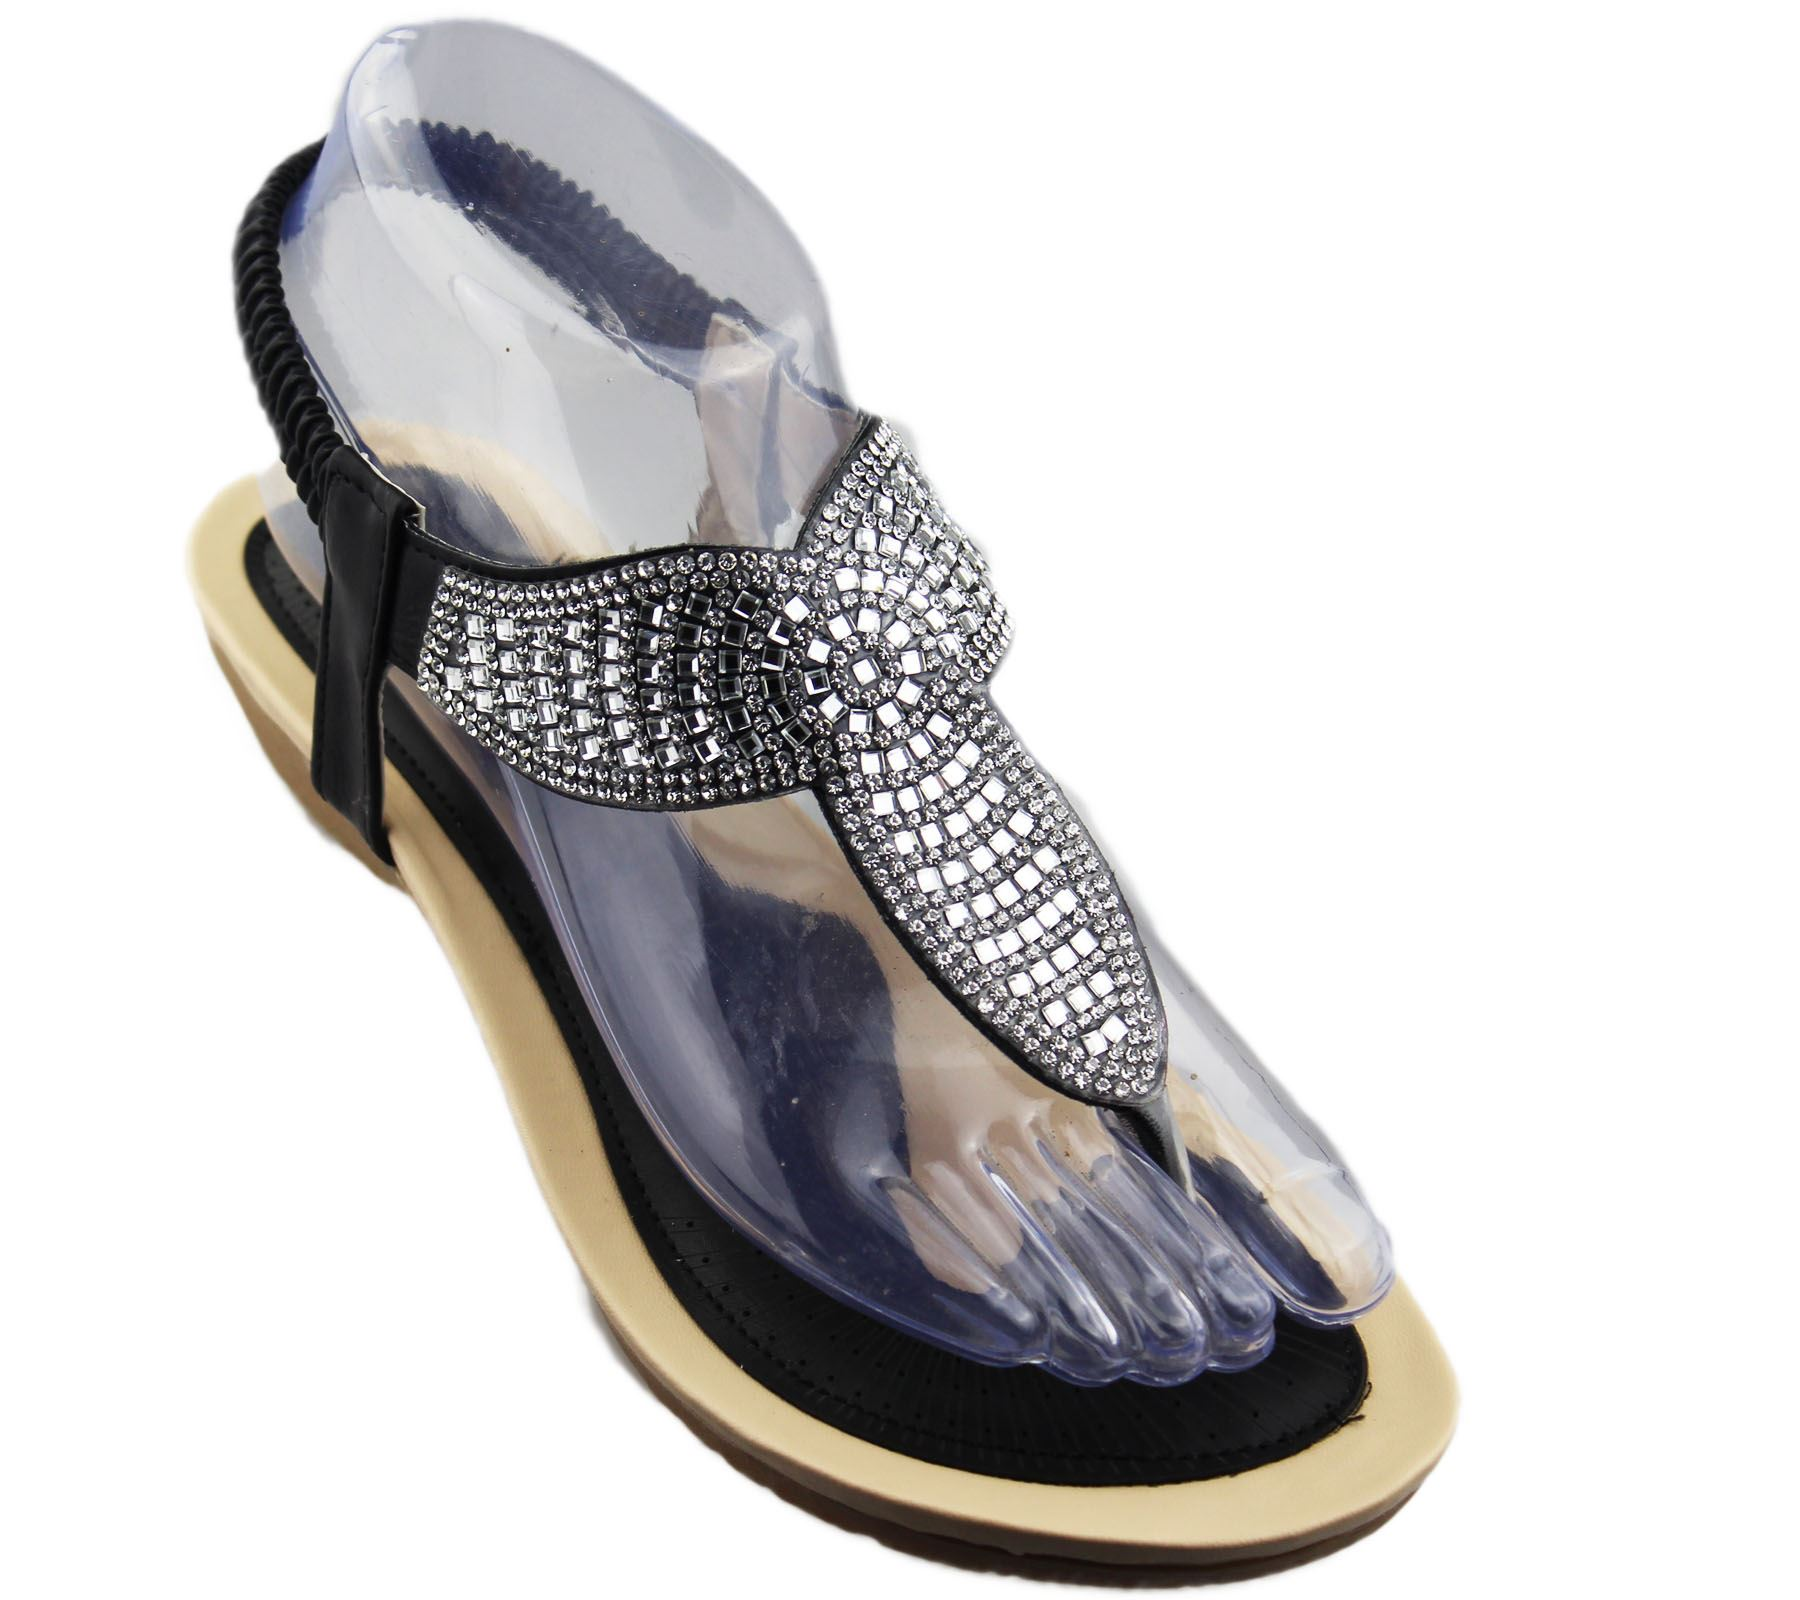 FOOTWEAR - Toe post sandals Sandalia